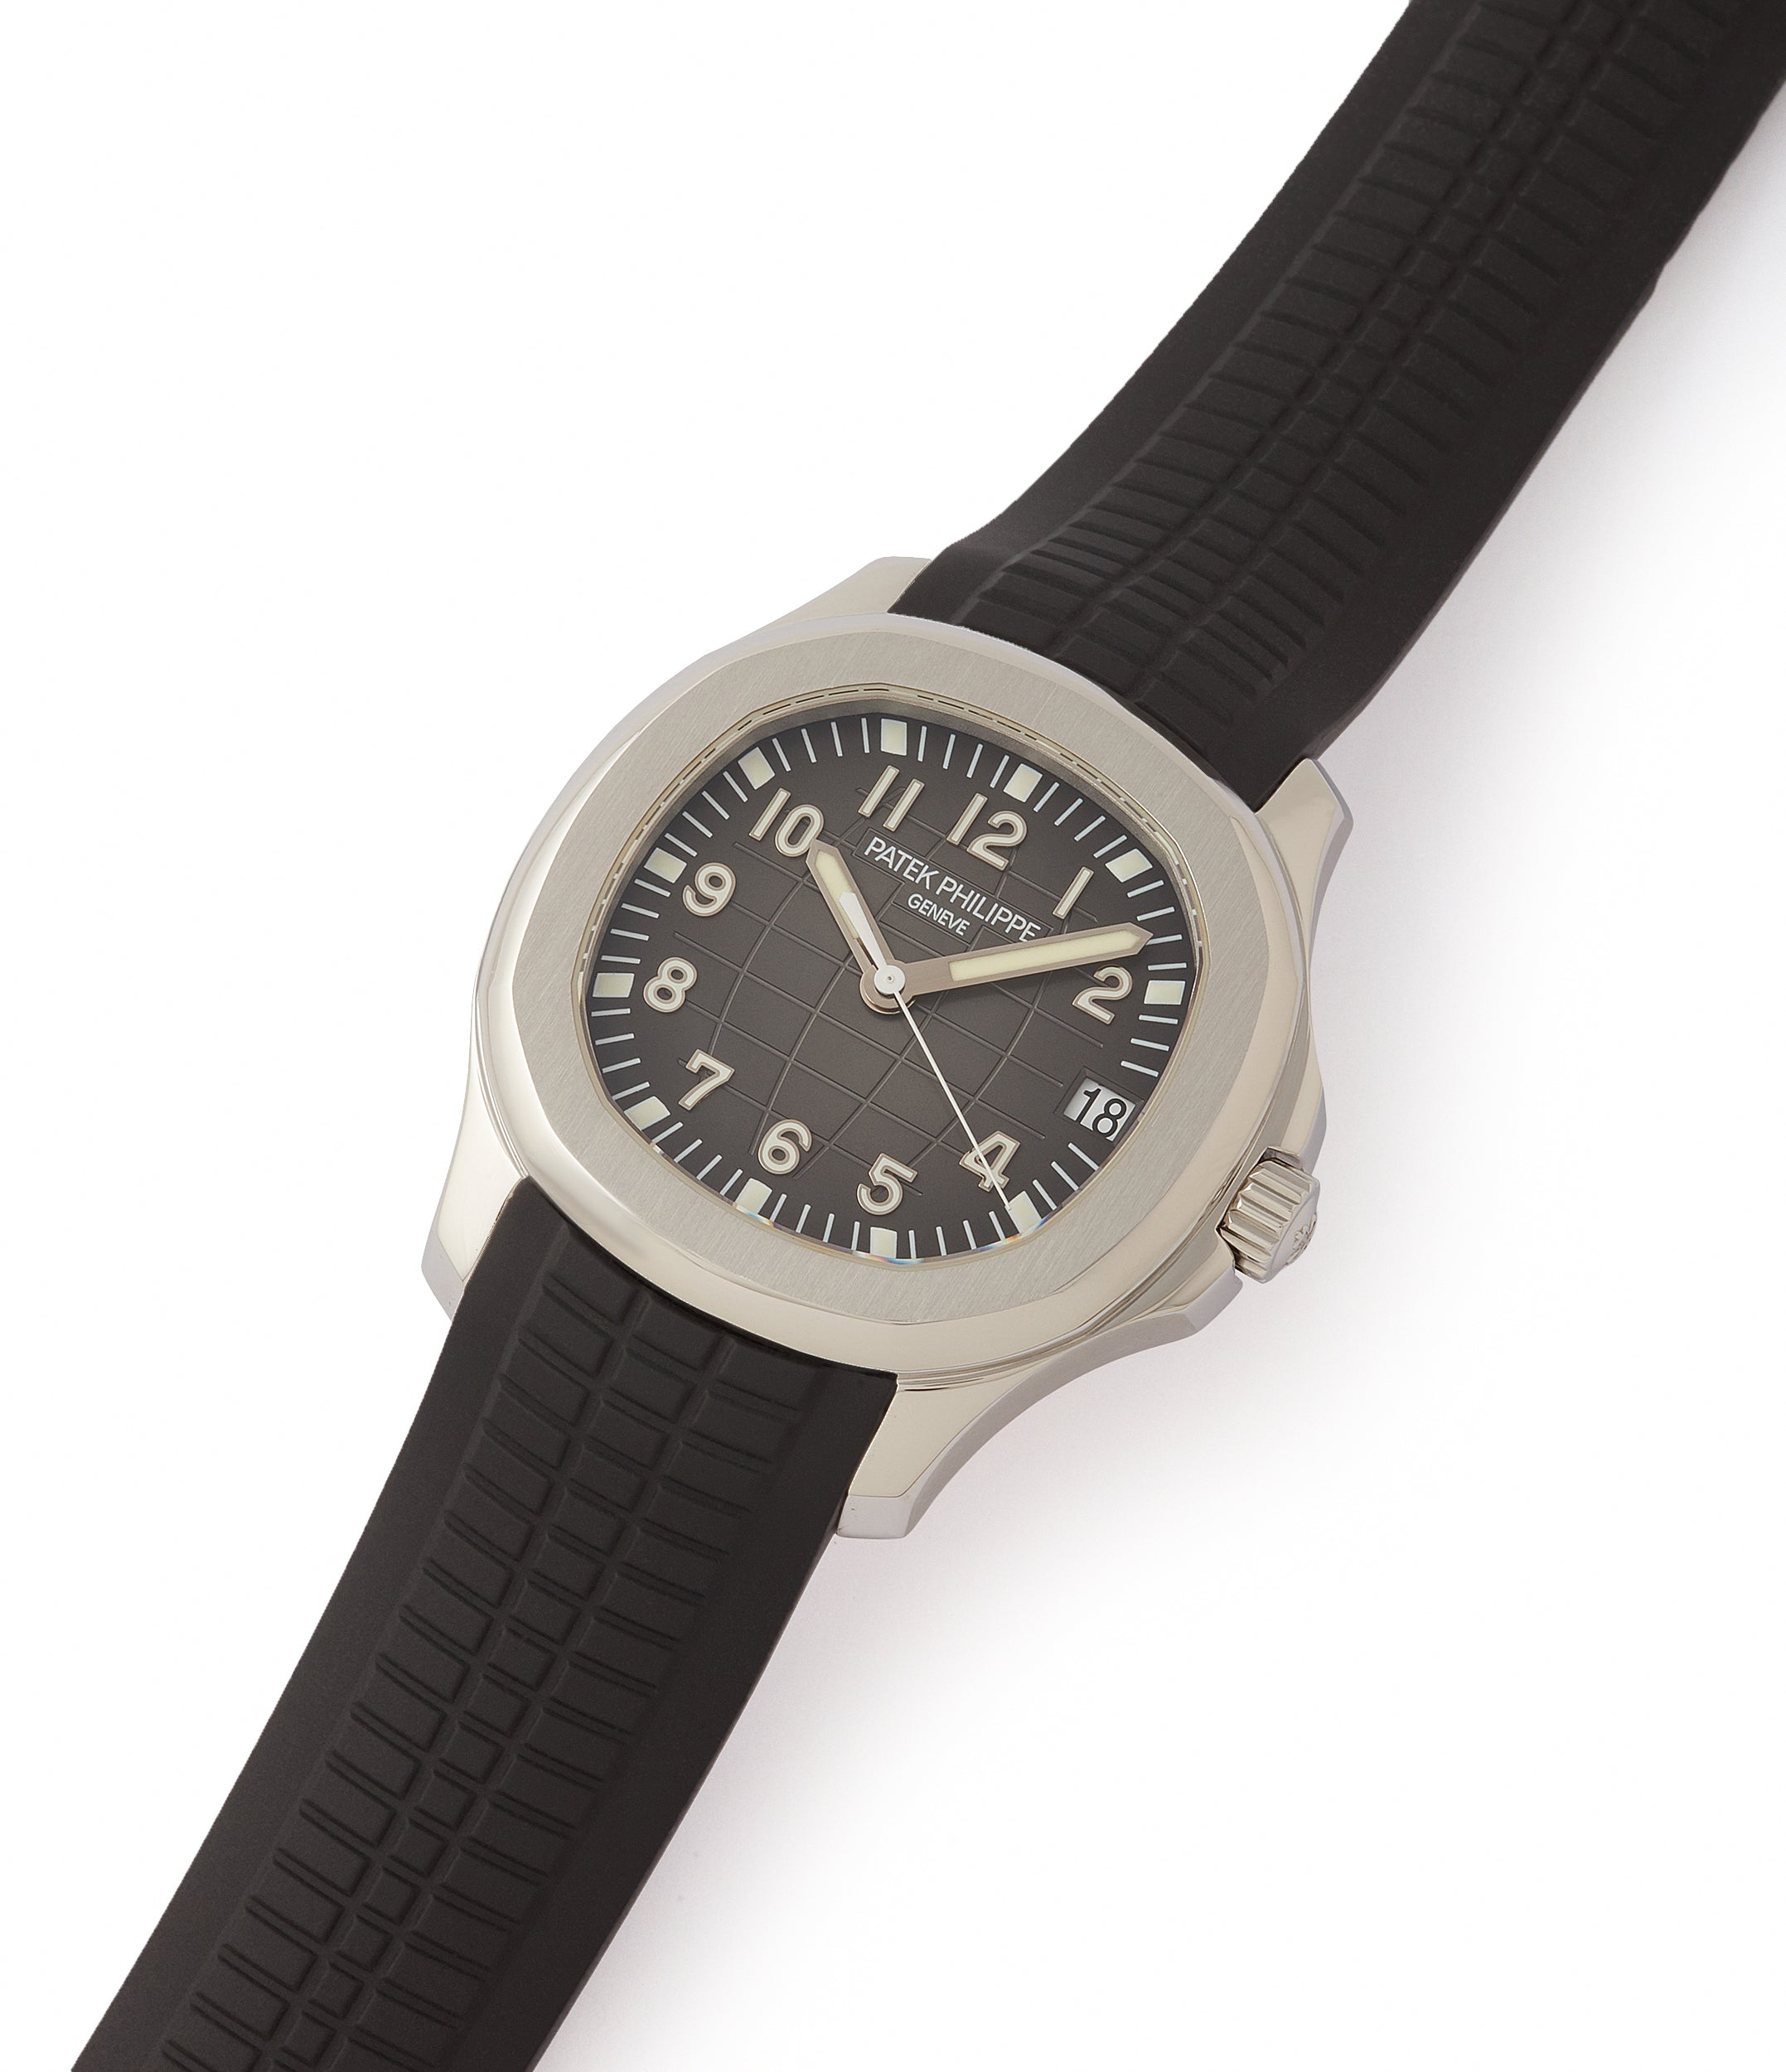 shop pre-owned Patek Philippe Aquanaut 5165A-001 transitional steel sport watch for sale online at A Collected Man London UK specialist of rare watches